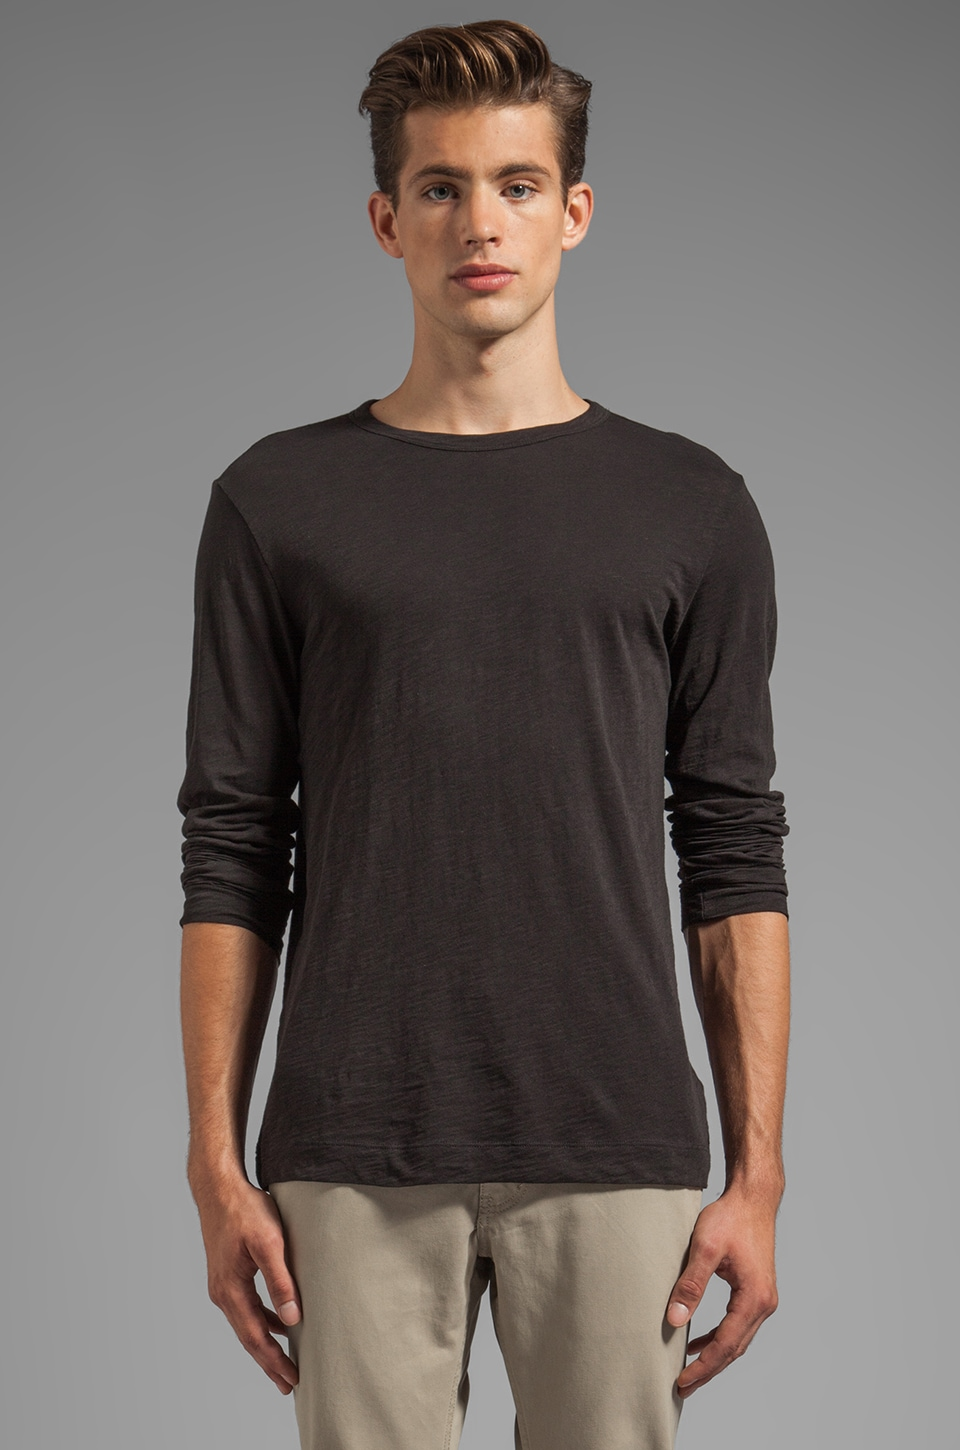 Theory Gaskell NL Tee in Black